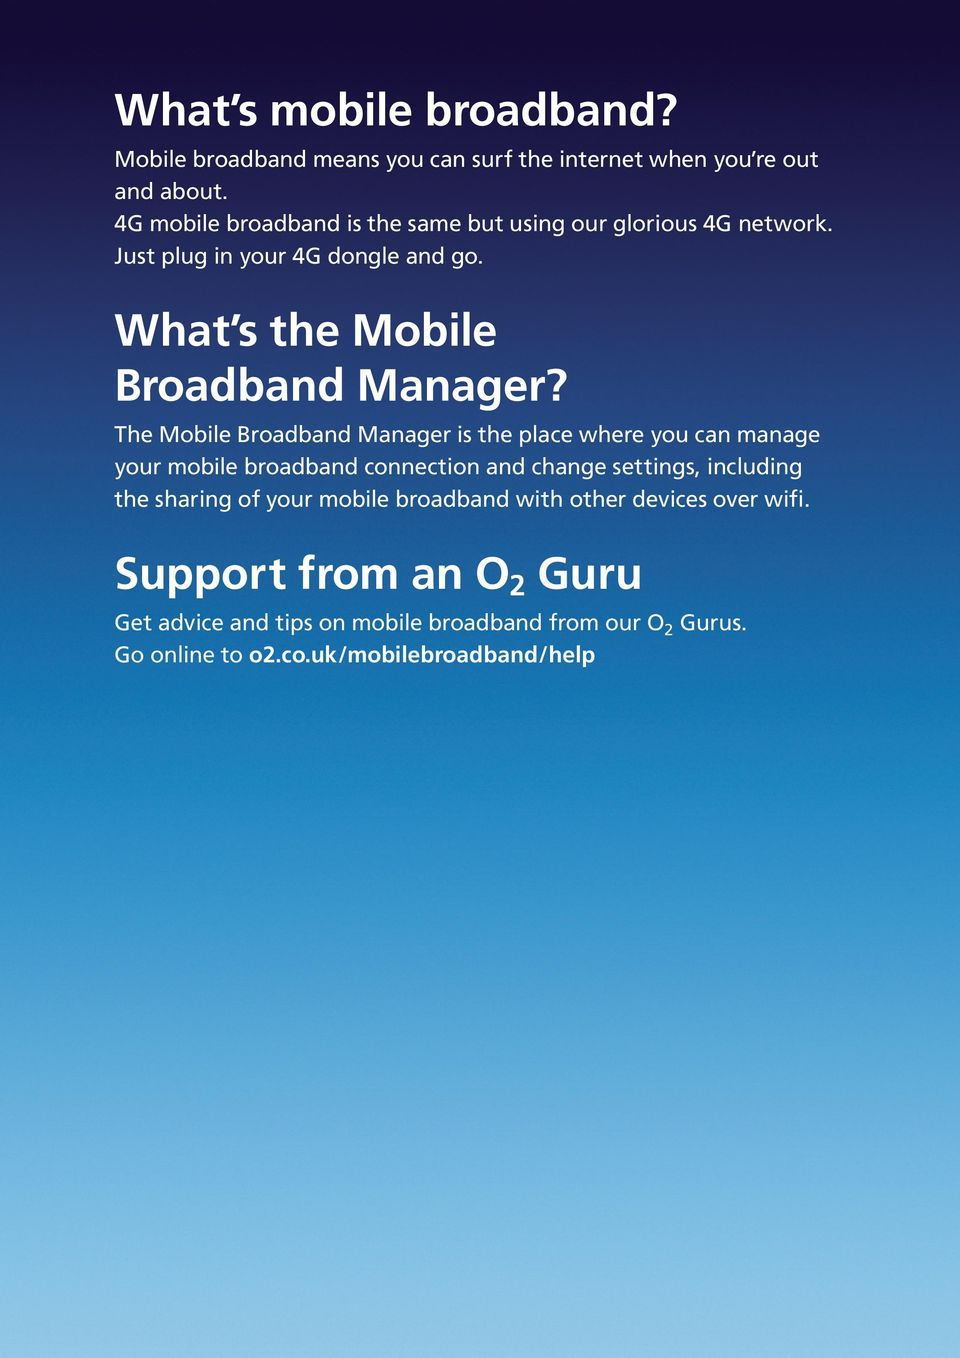 The Mobile Broadband Manager is the place where you can manage your mobile broadband connection and change settings, including the sharing